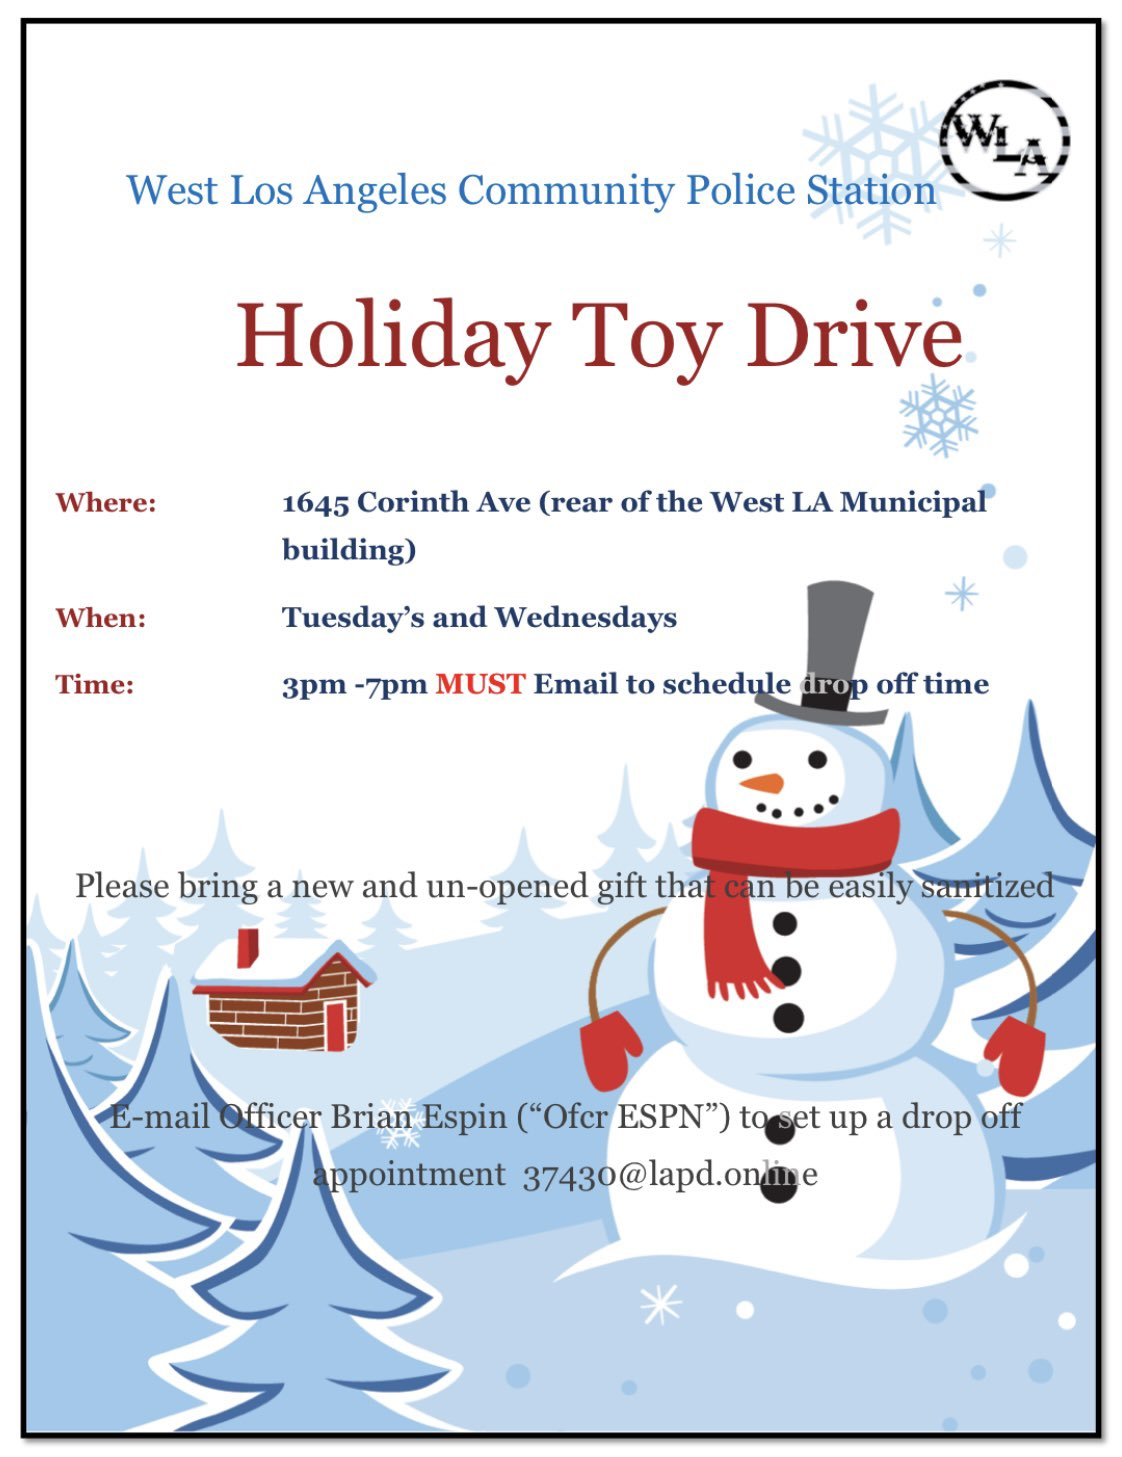 West LA Community Police Station Toy Drive